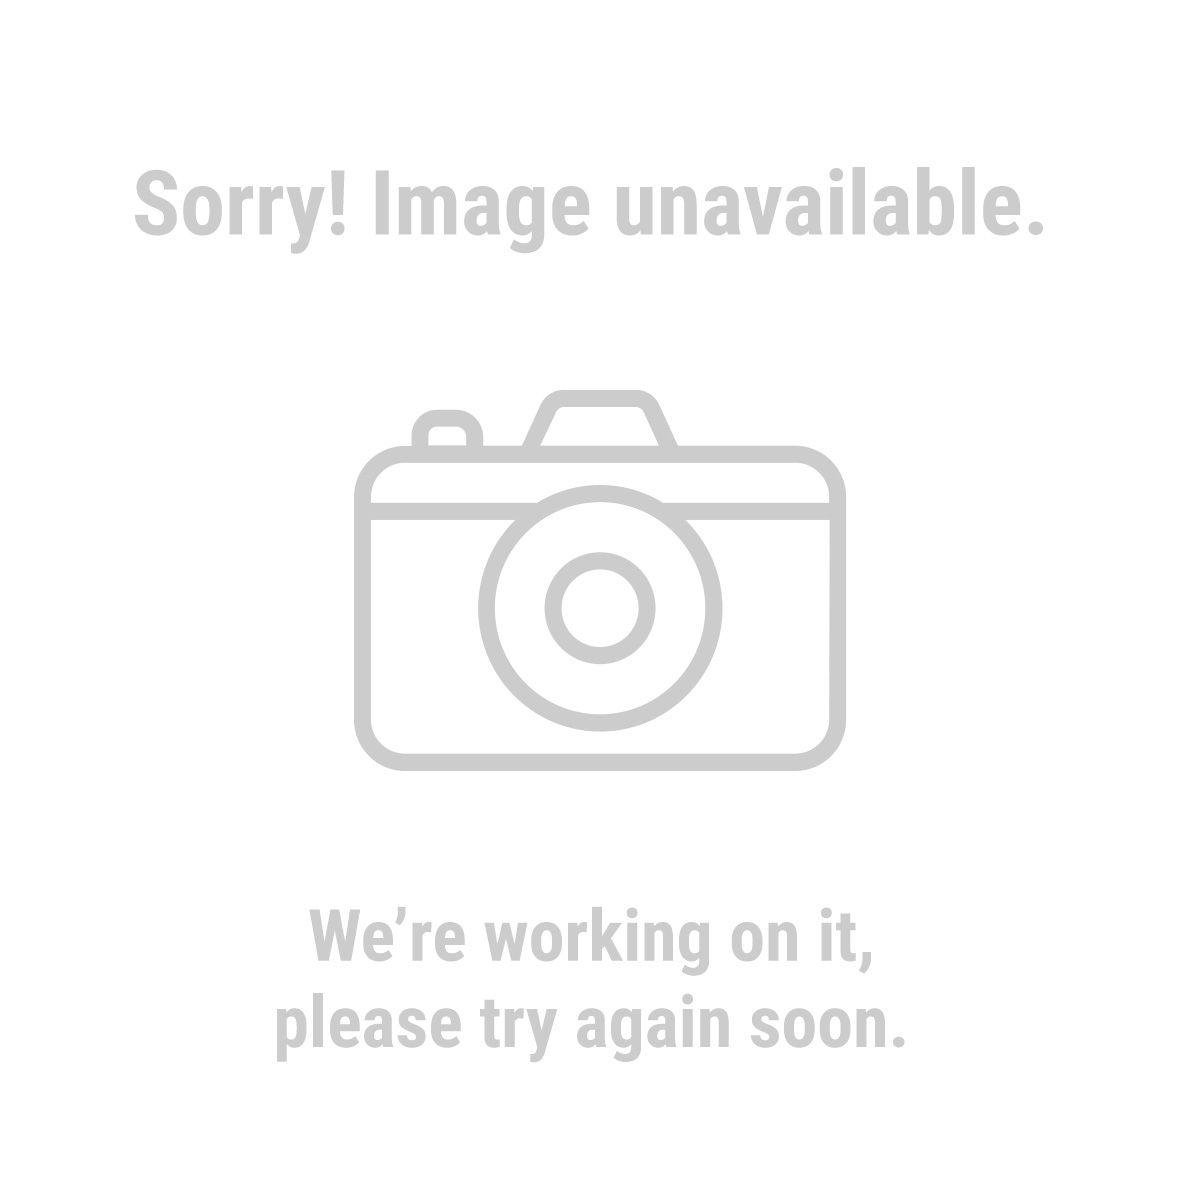 Chicago Electric Welding Systems 98233 240 Volt Inverter Arc/TIG Welder with Digital Readout